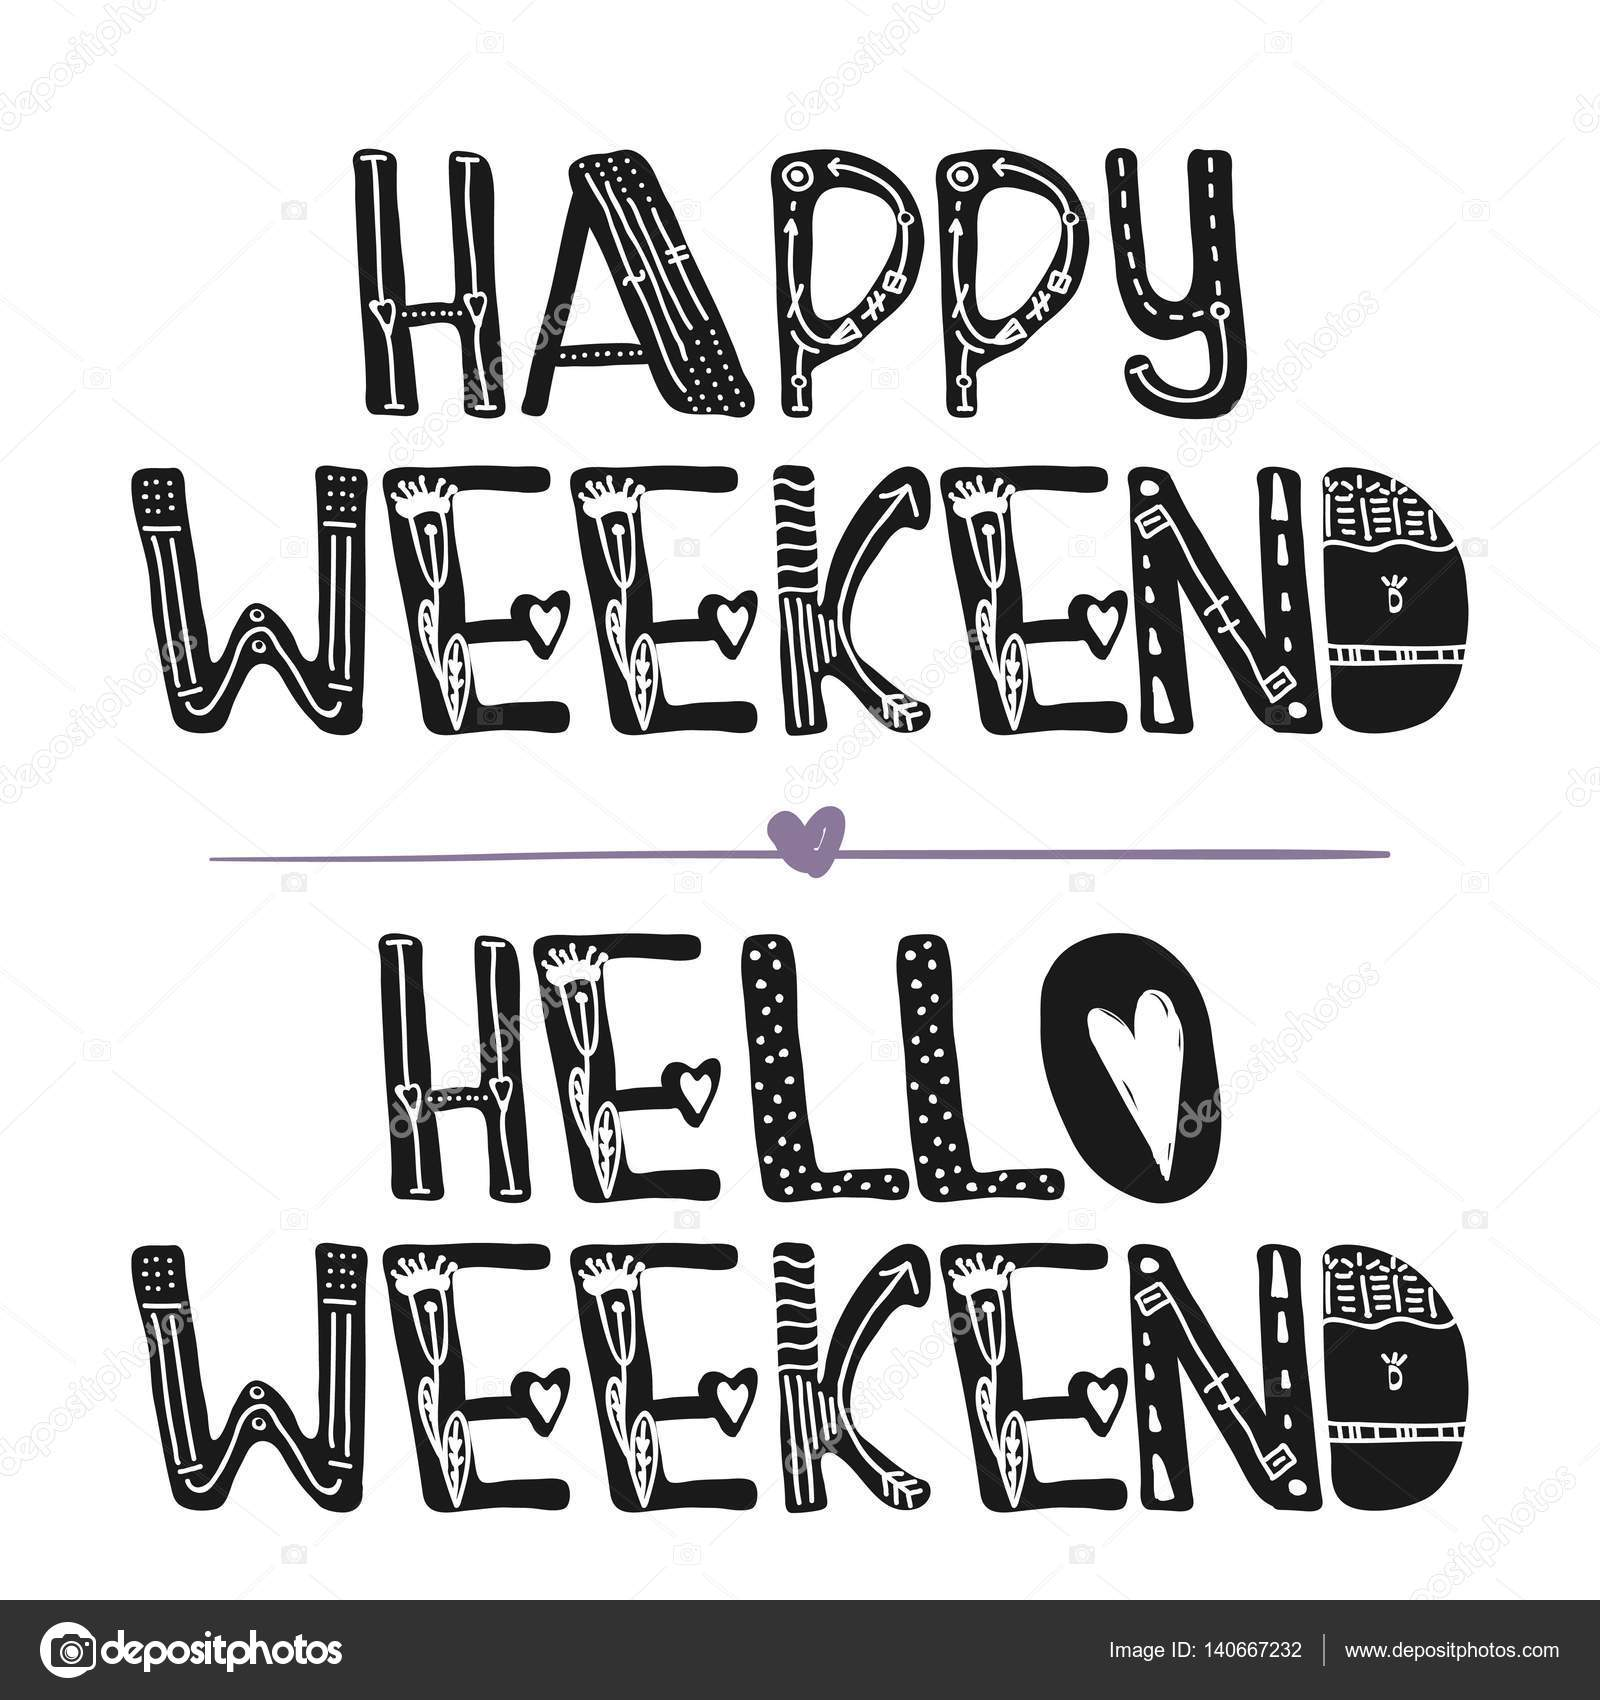 Hello Weekend . Happy Weekend. Motivational Quotes. Sweet Cute Inspiration,  Typography. Calligraphy Photo Graphic Design Element. A Handwritten Sign.